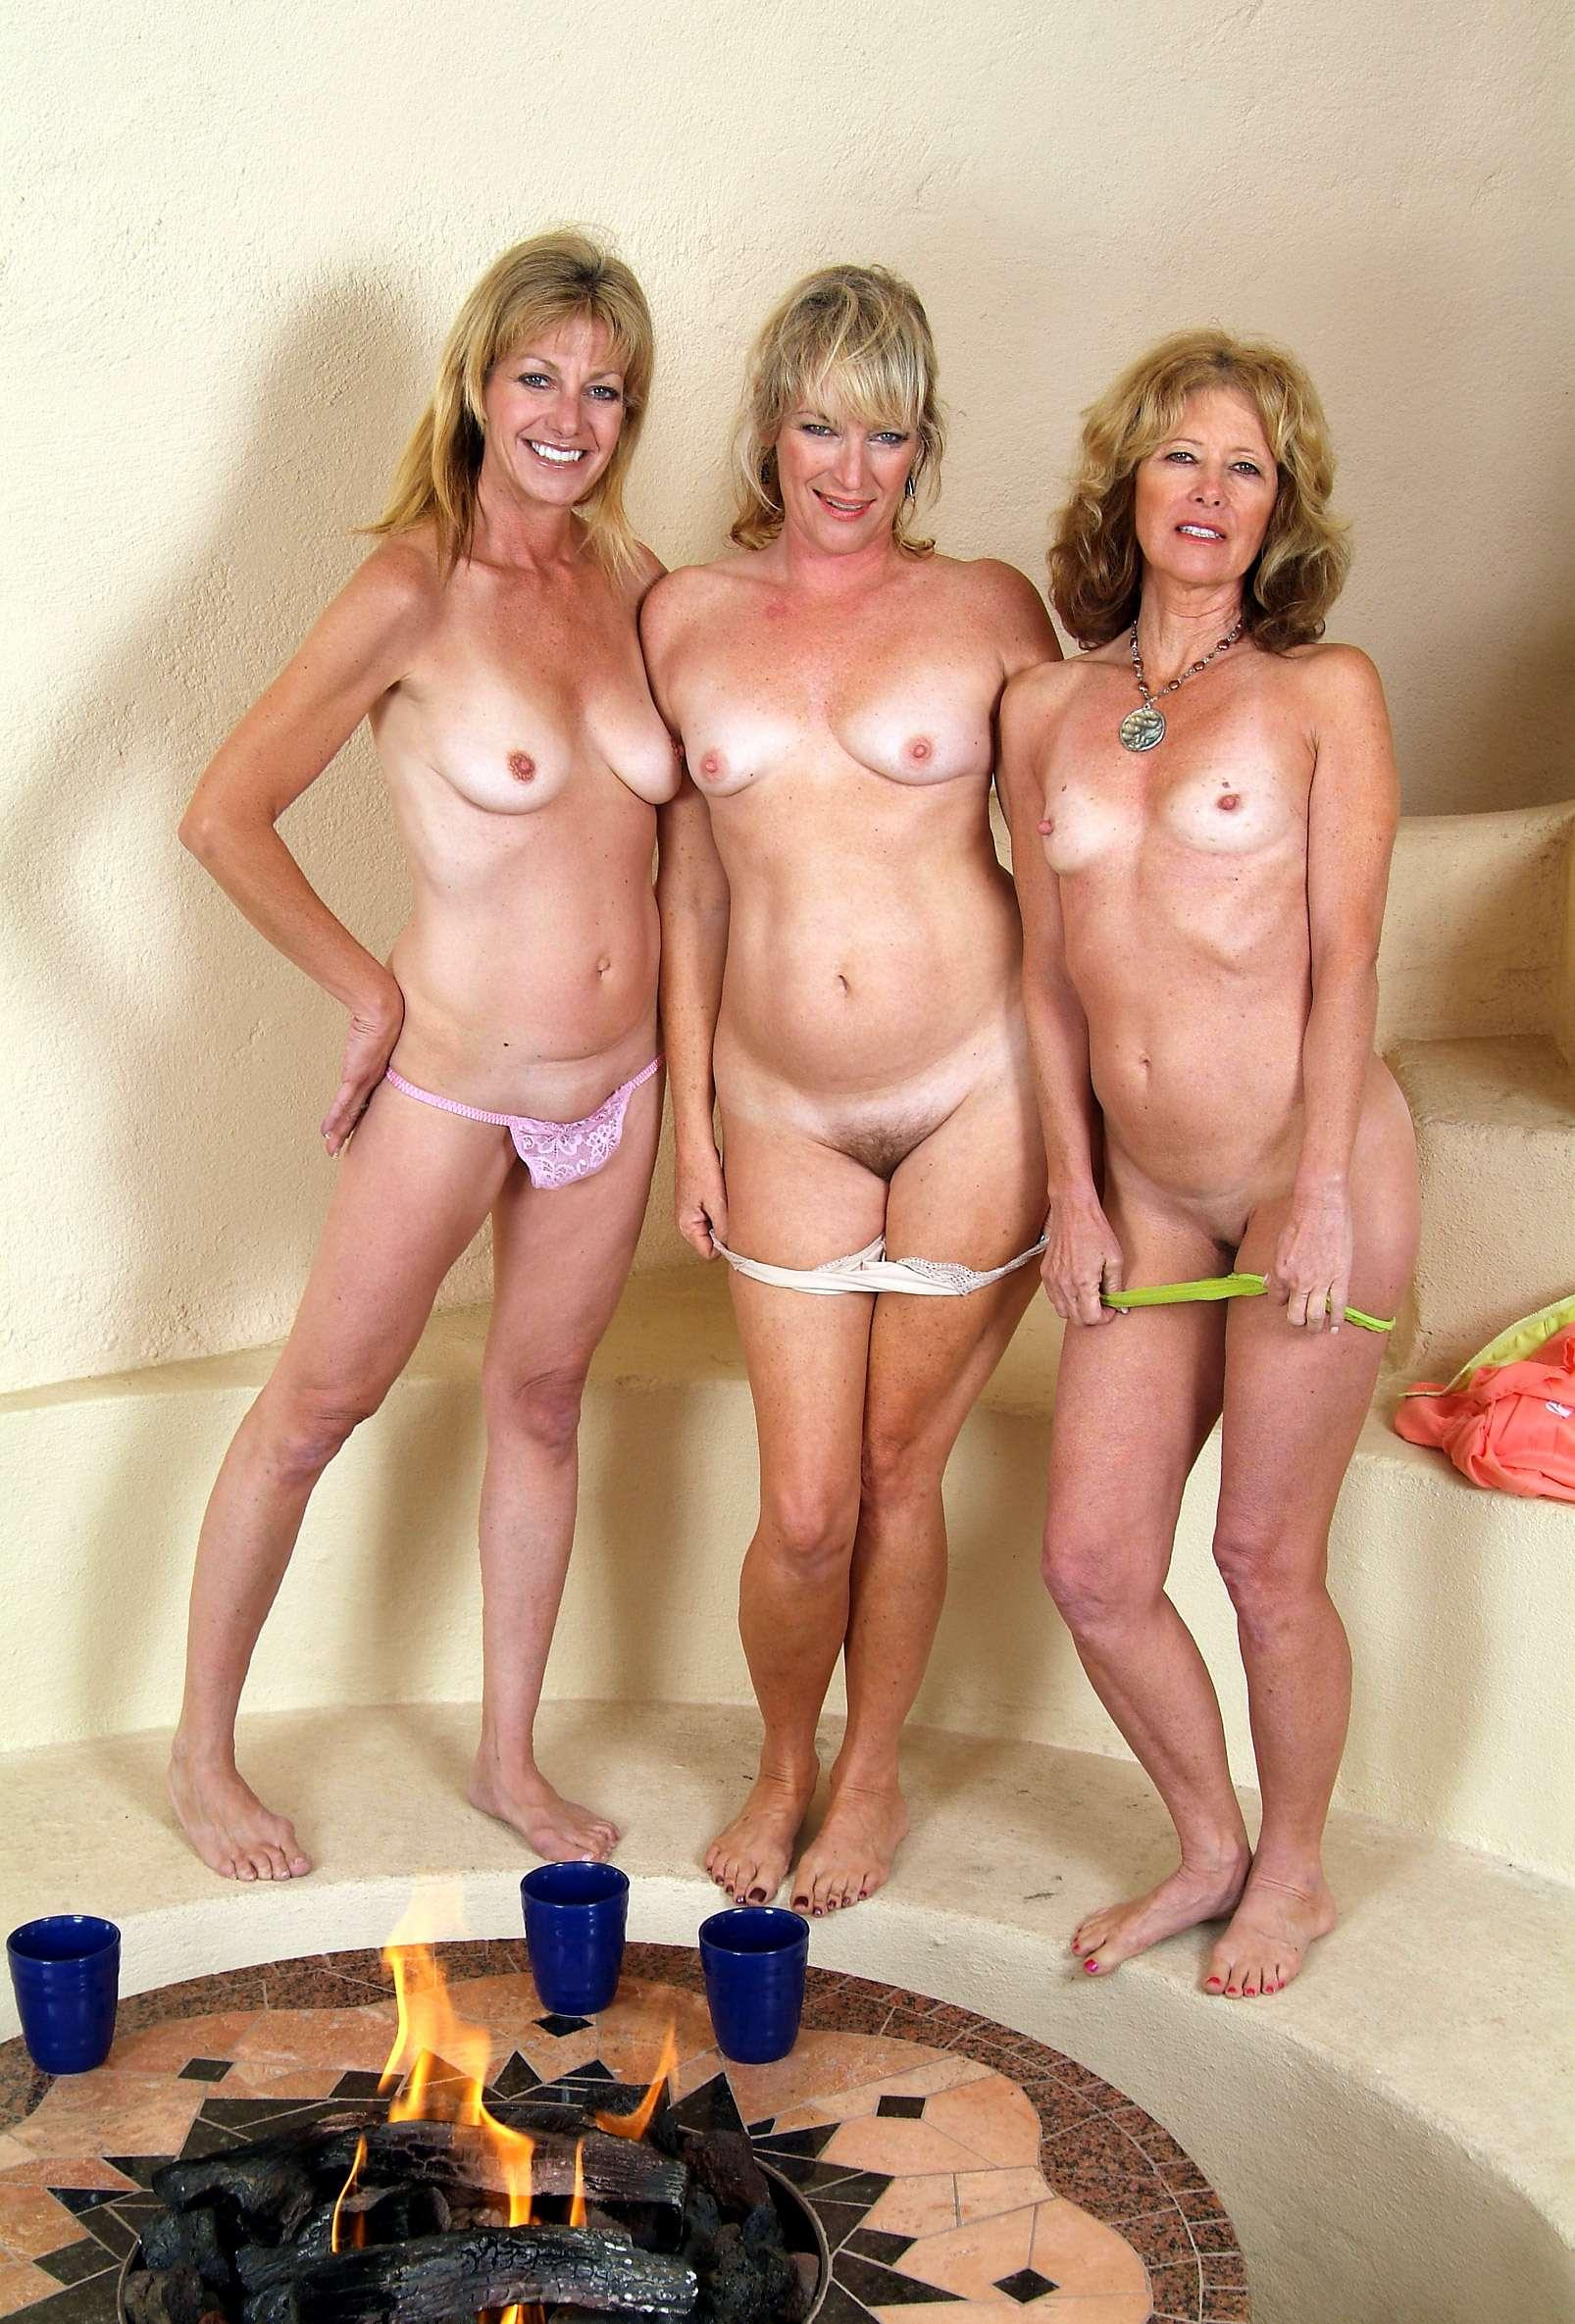 Three on one adult hot naked pics